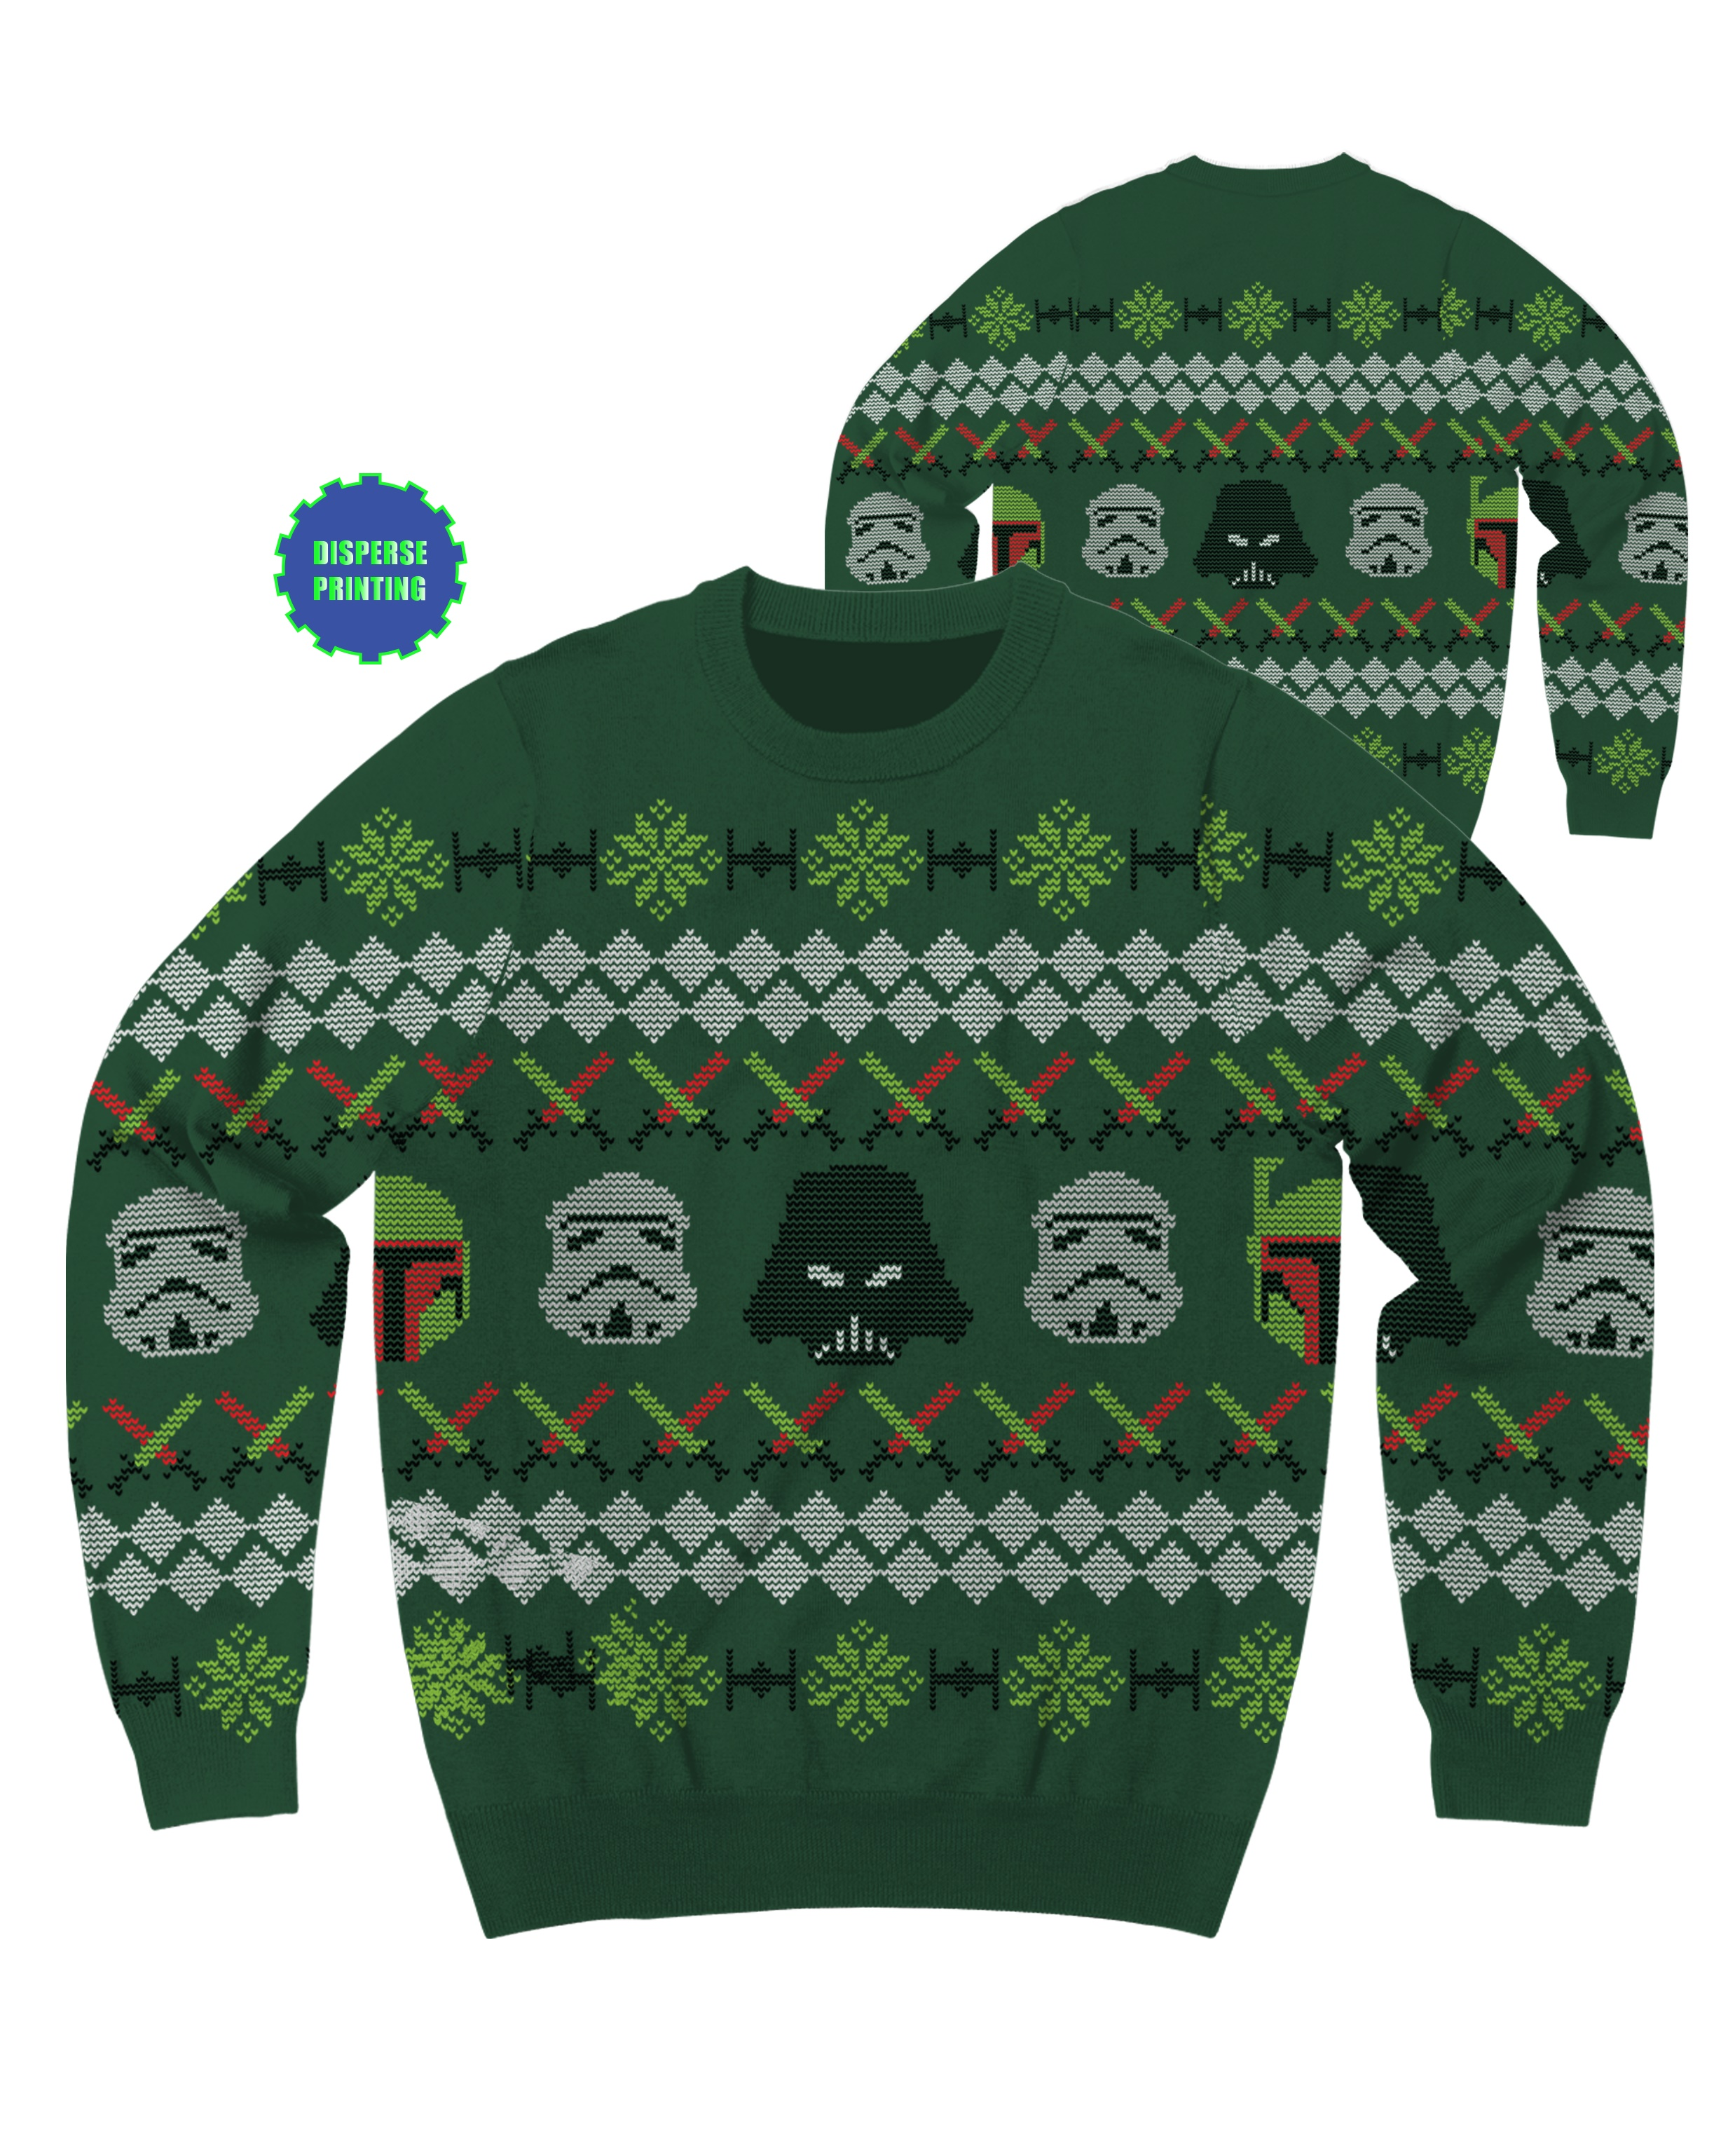 mad engine star wars imperial holiday ugly christmas sweater walmartcom - Star Wars Ugly Christmas Sweater